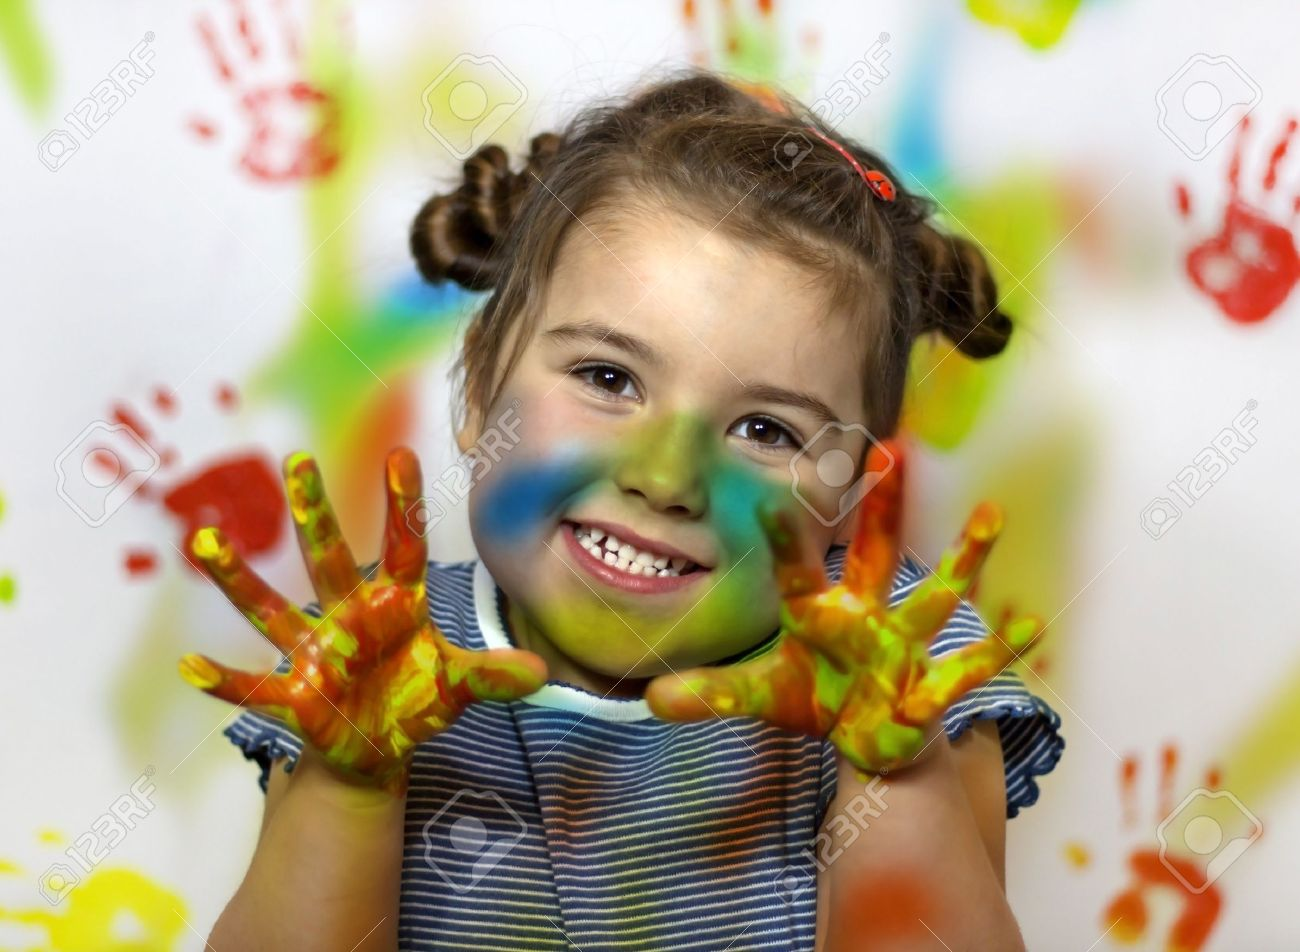 <b>Kid playing</b> with paint (kids, painting, dirty) - 13747400-Kid-playing-with-paint-Stock-Photo-kids-painting-dirty